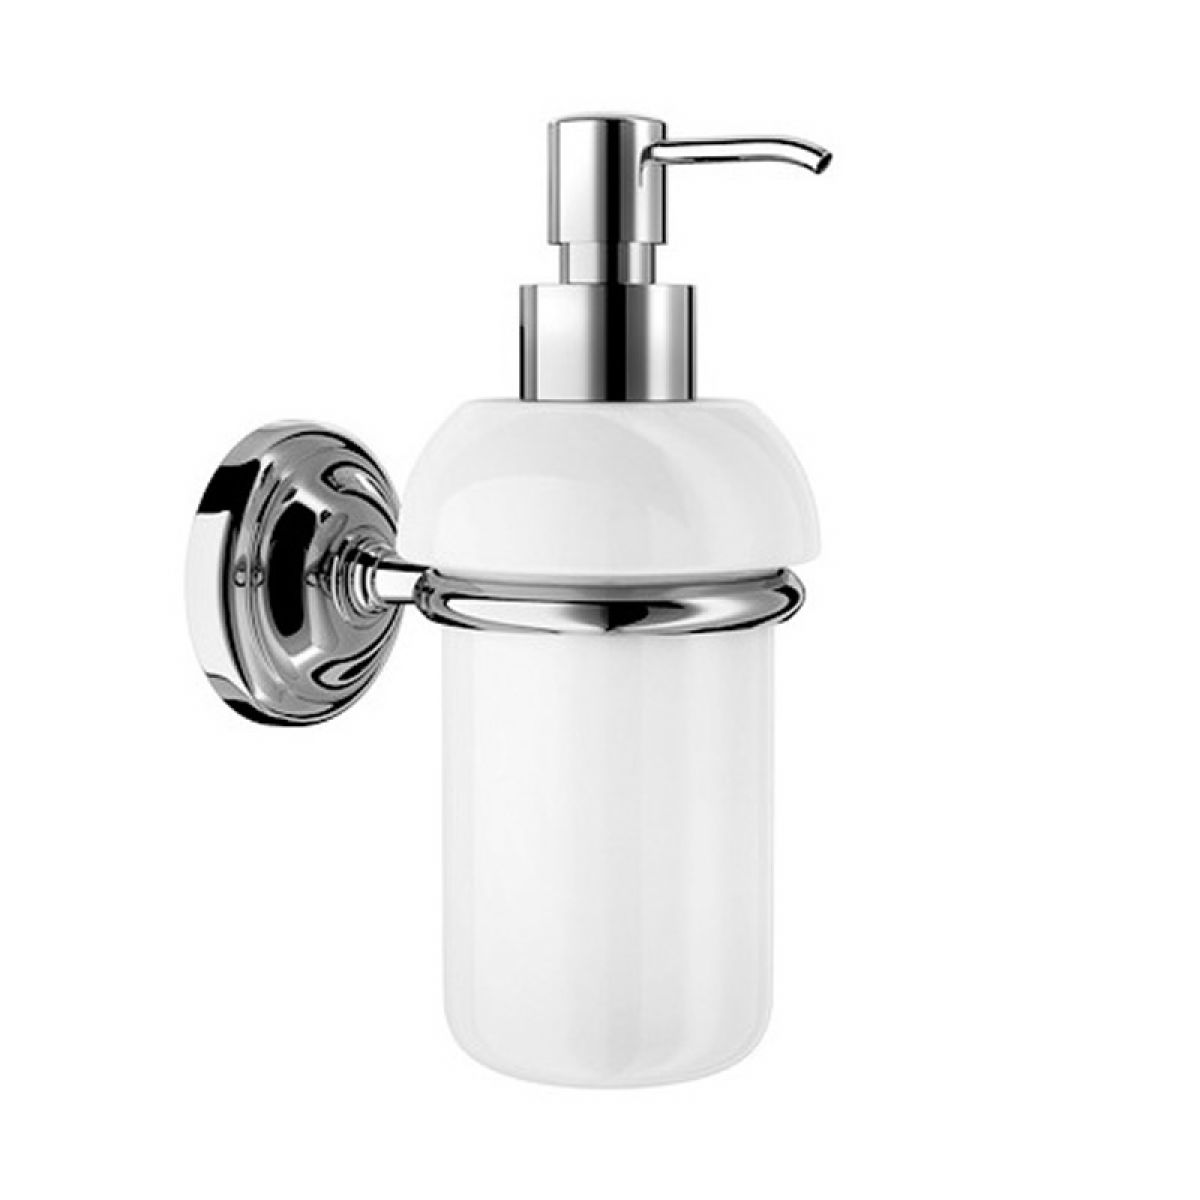 Roca Carmen Wall Mounted Soap Dispenser